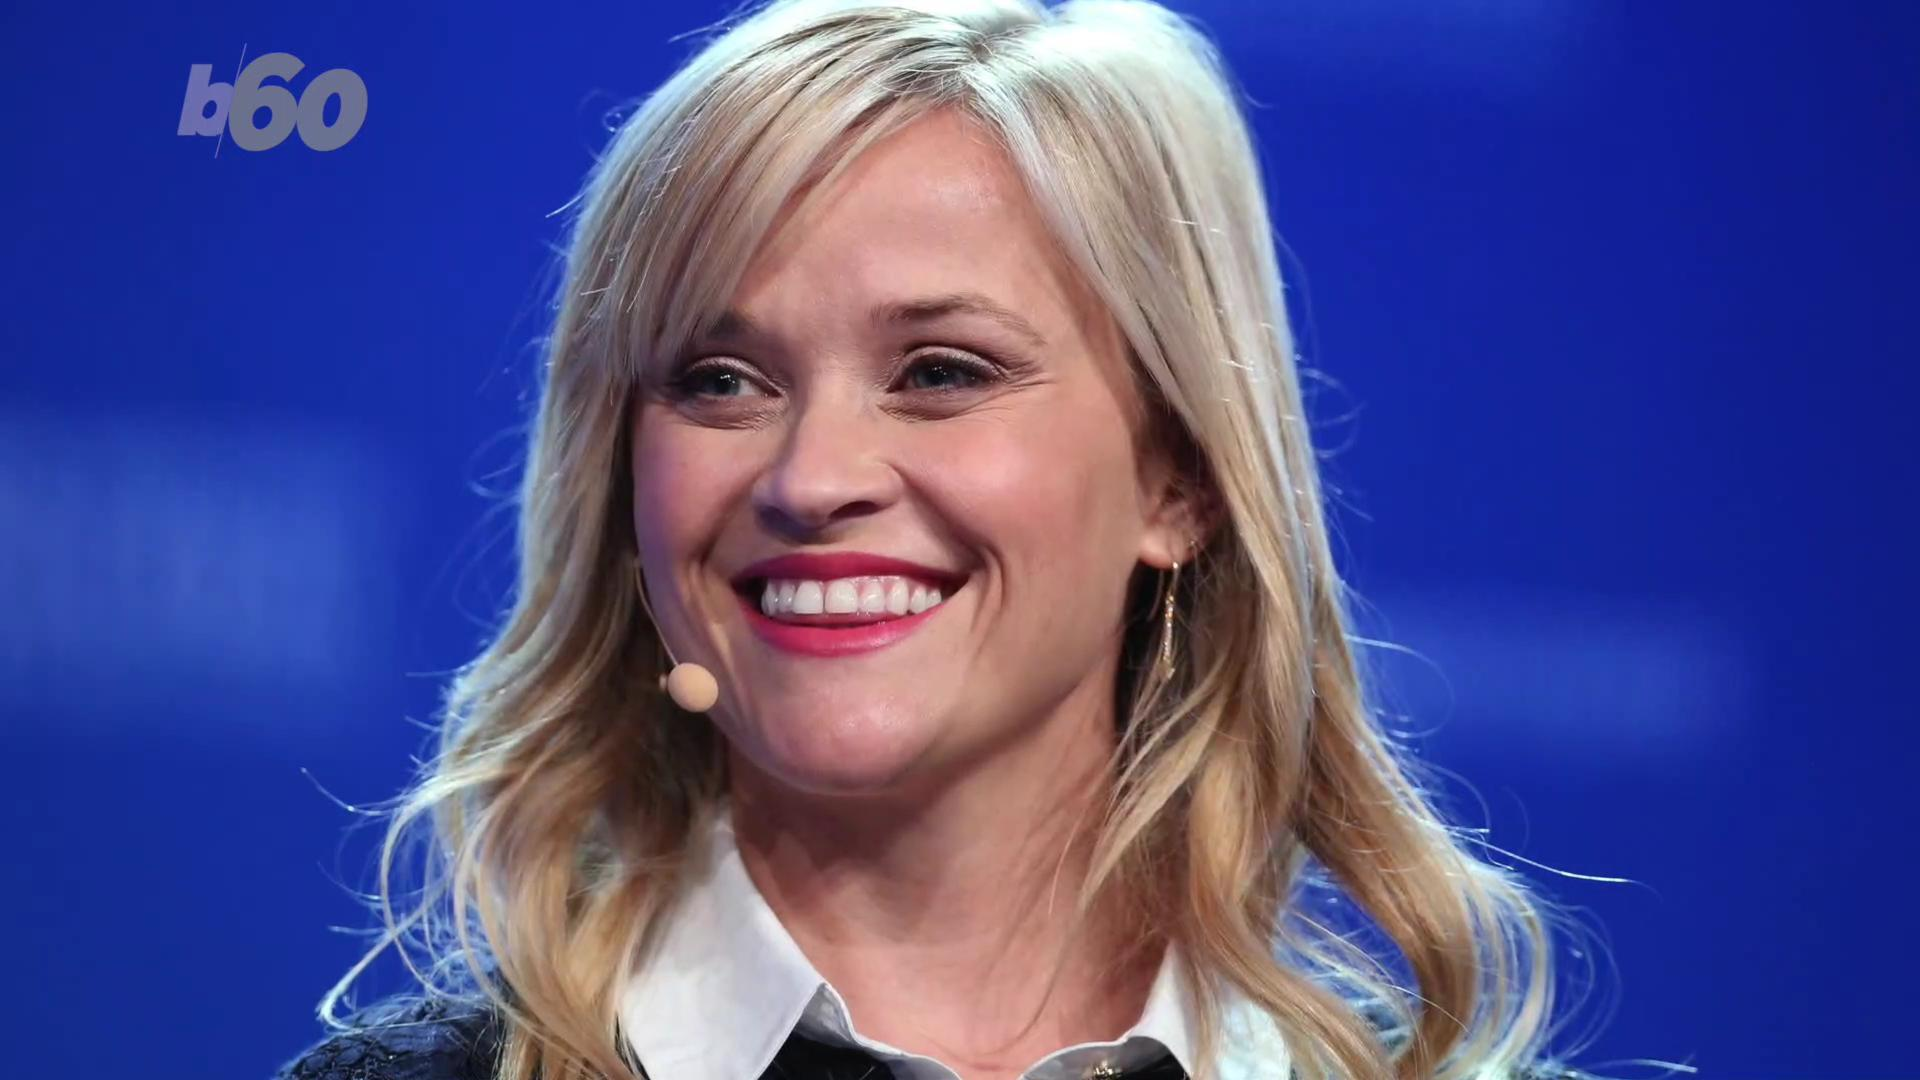 Reese Witherspoon Visits Her Old Dorm Room and It's Adorable!